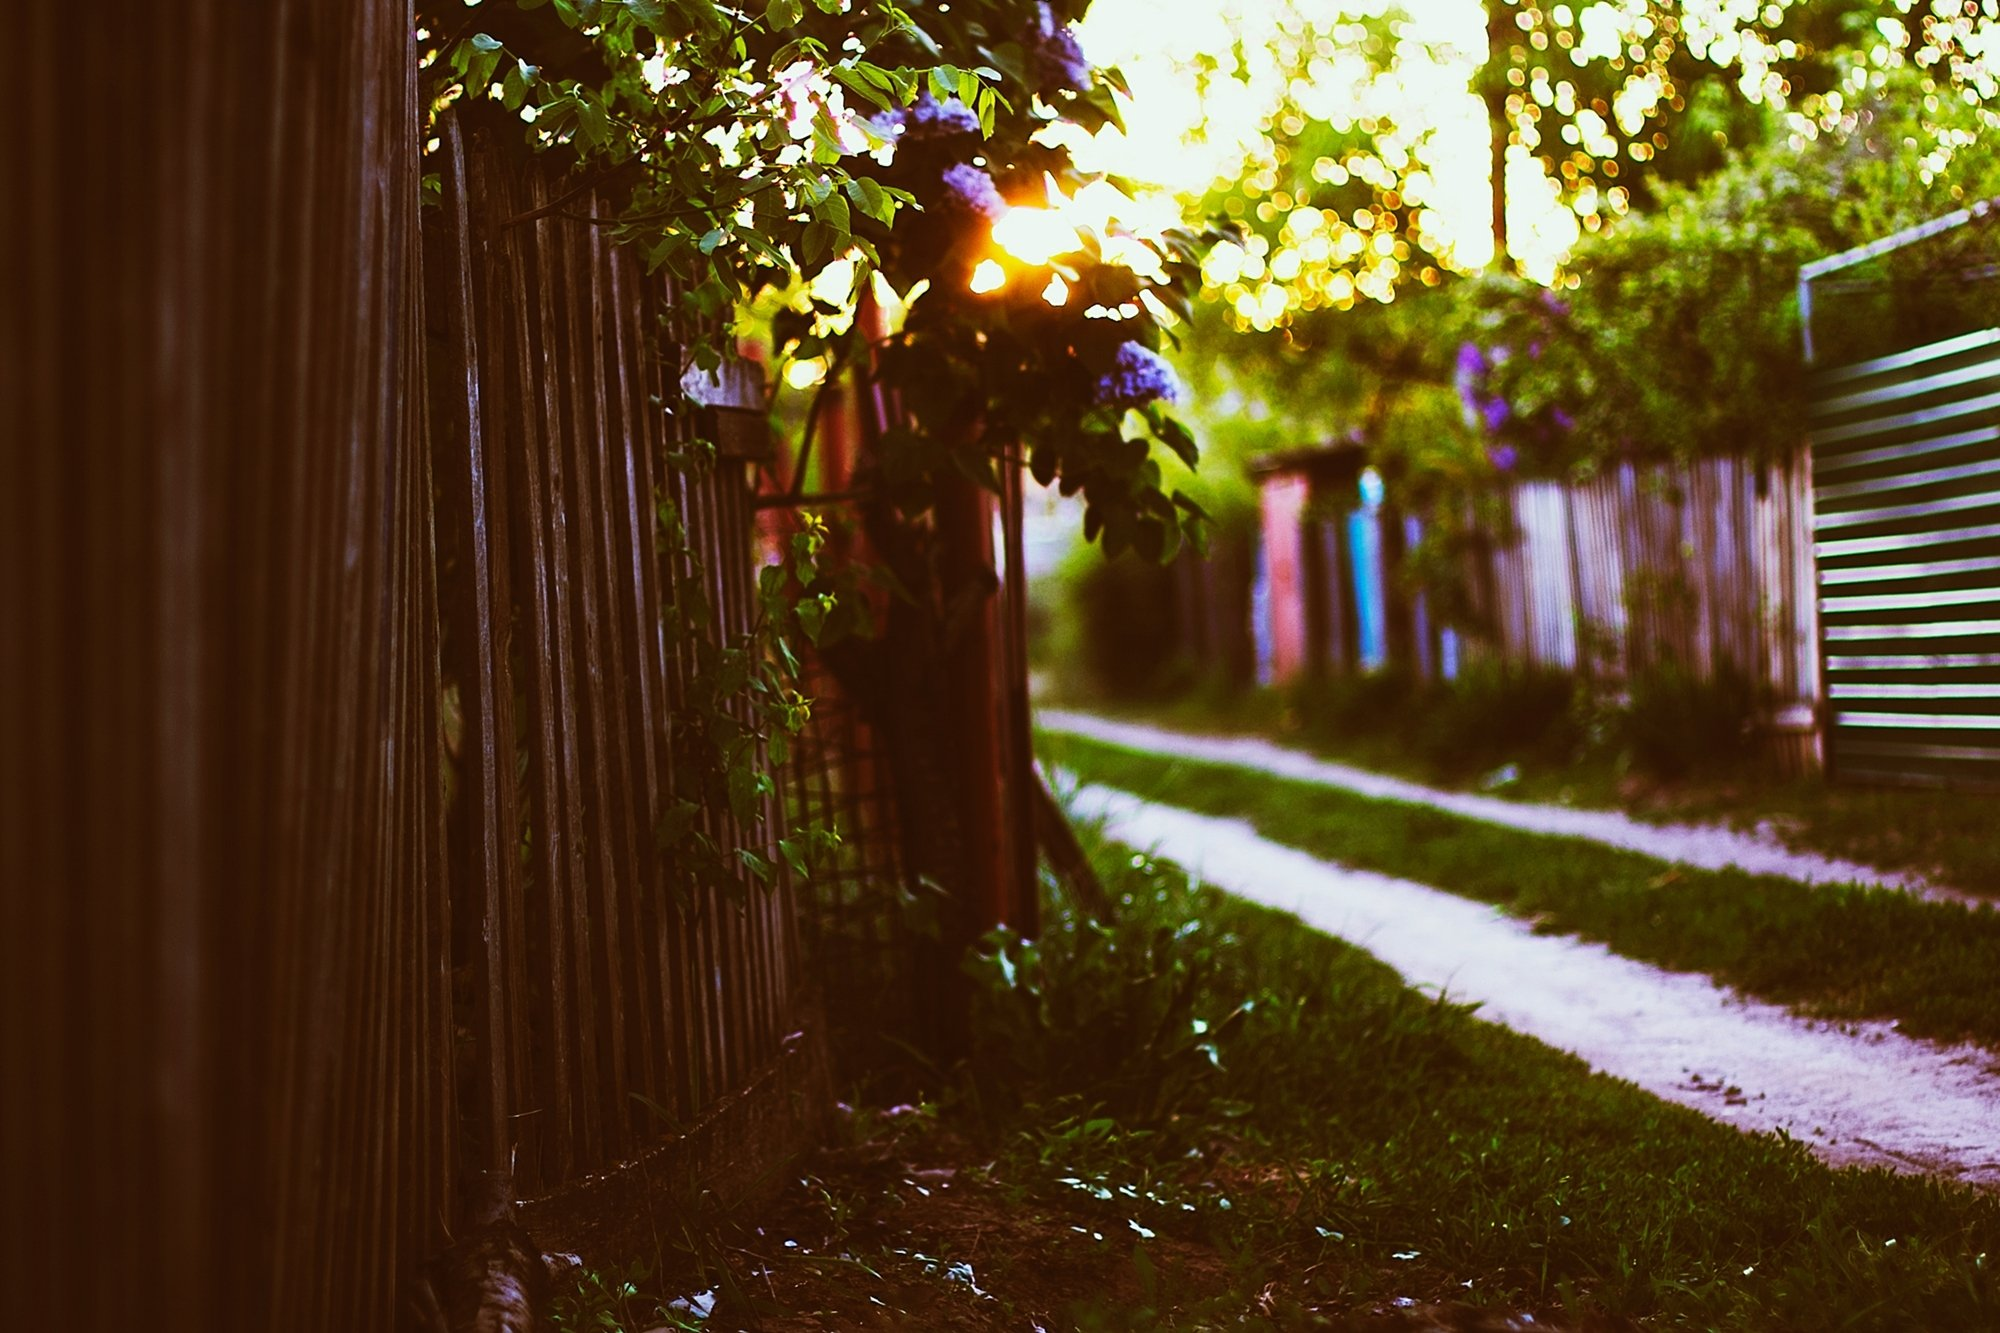 sunset fence house grass leaves spring sun bokeh lilac